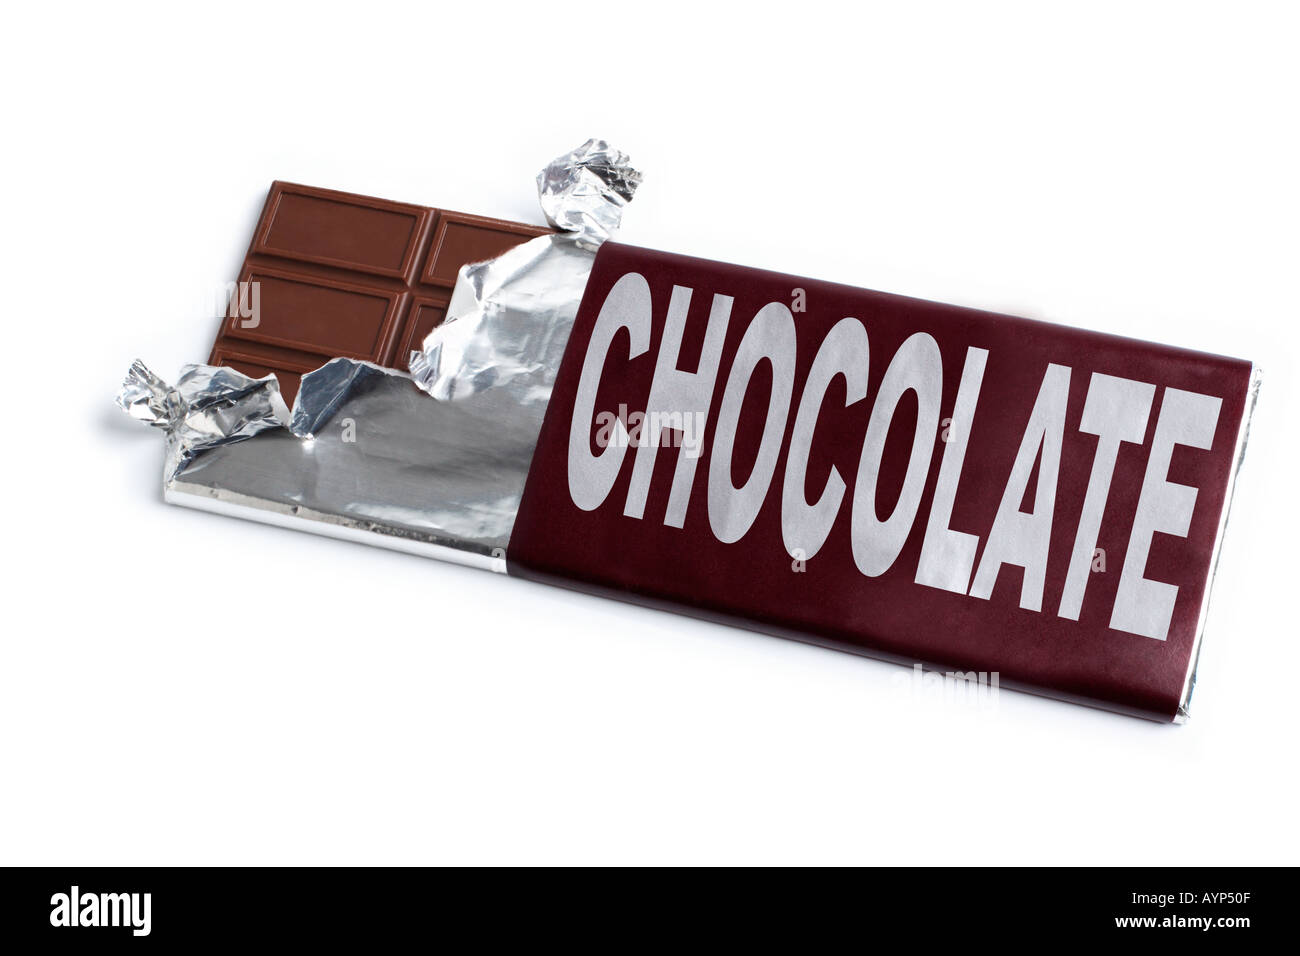 Chocolate Bar with open wrapper - Stock Image